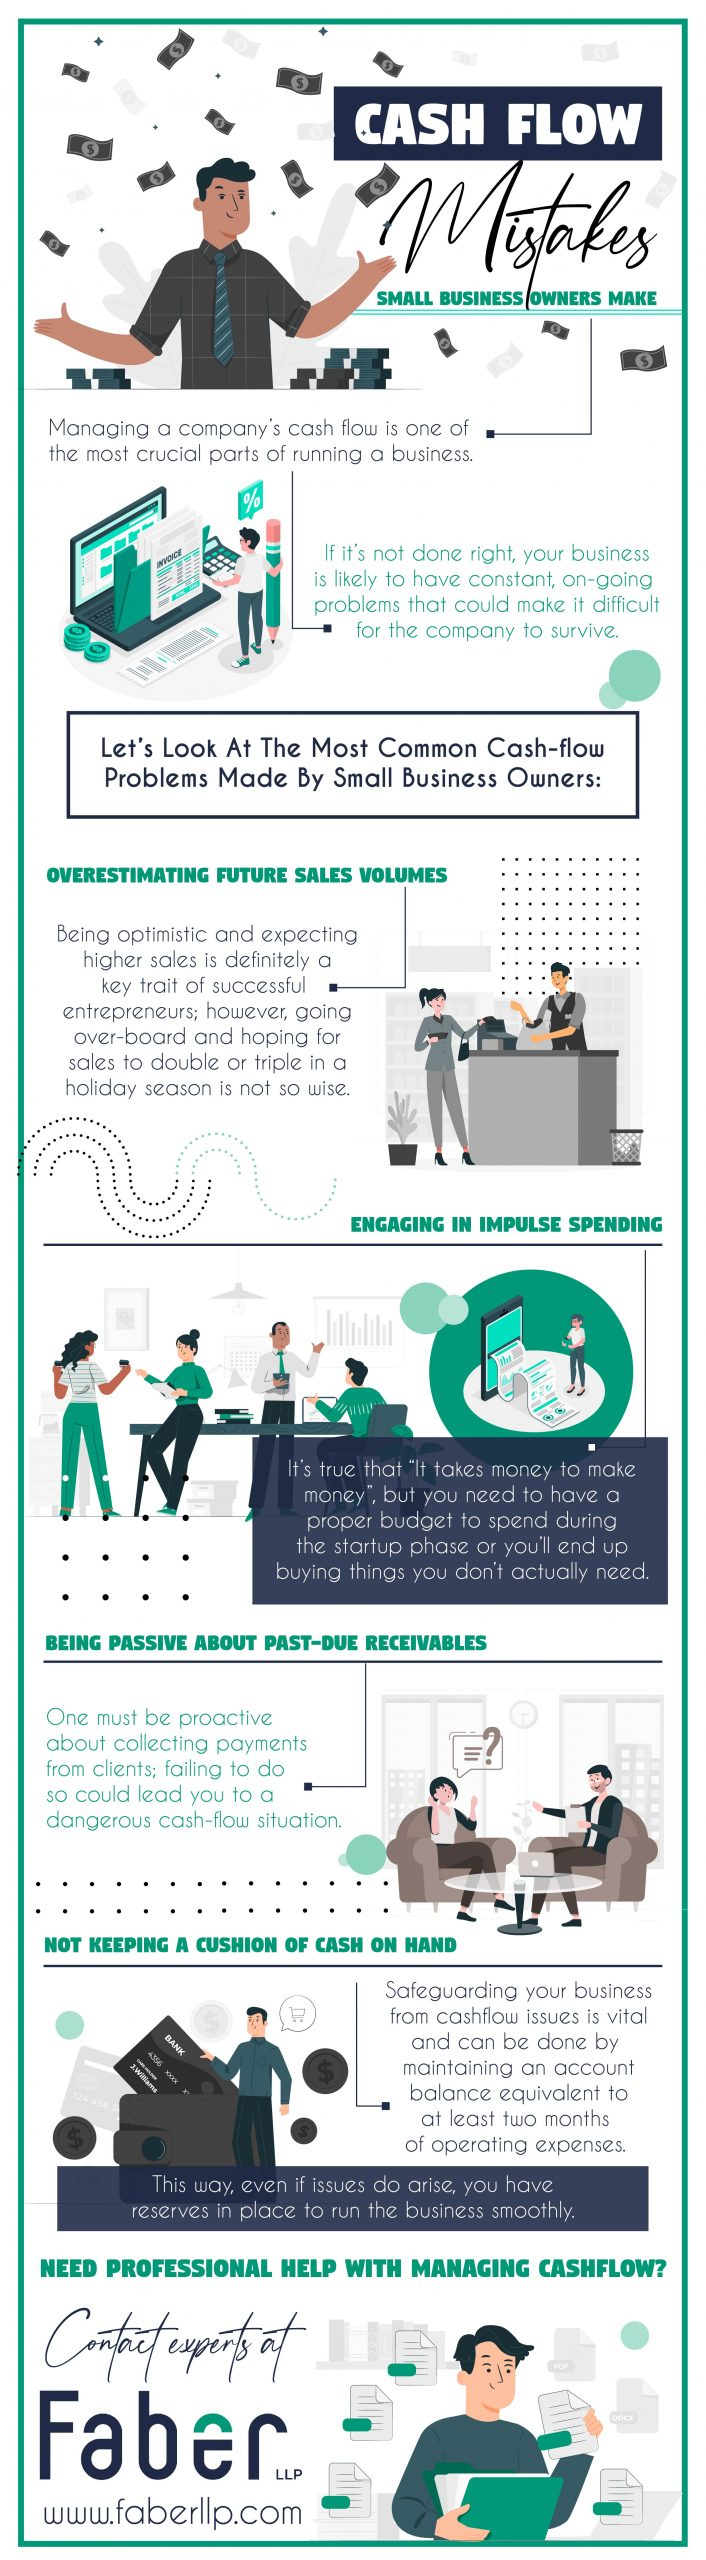 CashFlow Mistakes Small Business Owners Make - Infograph